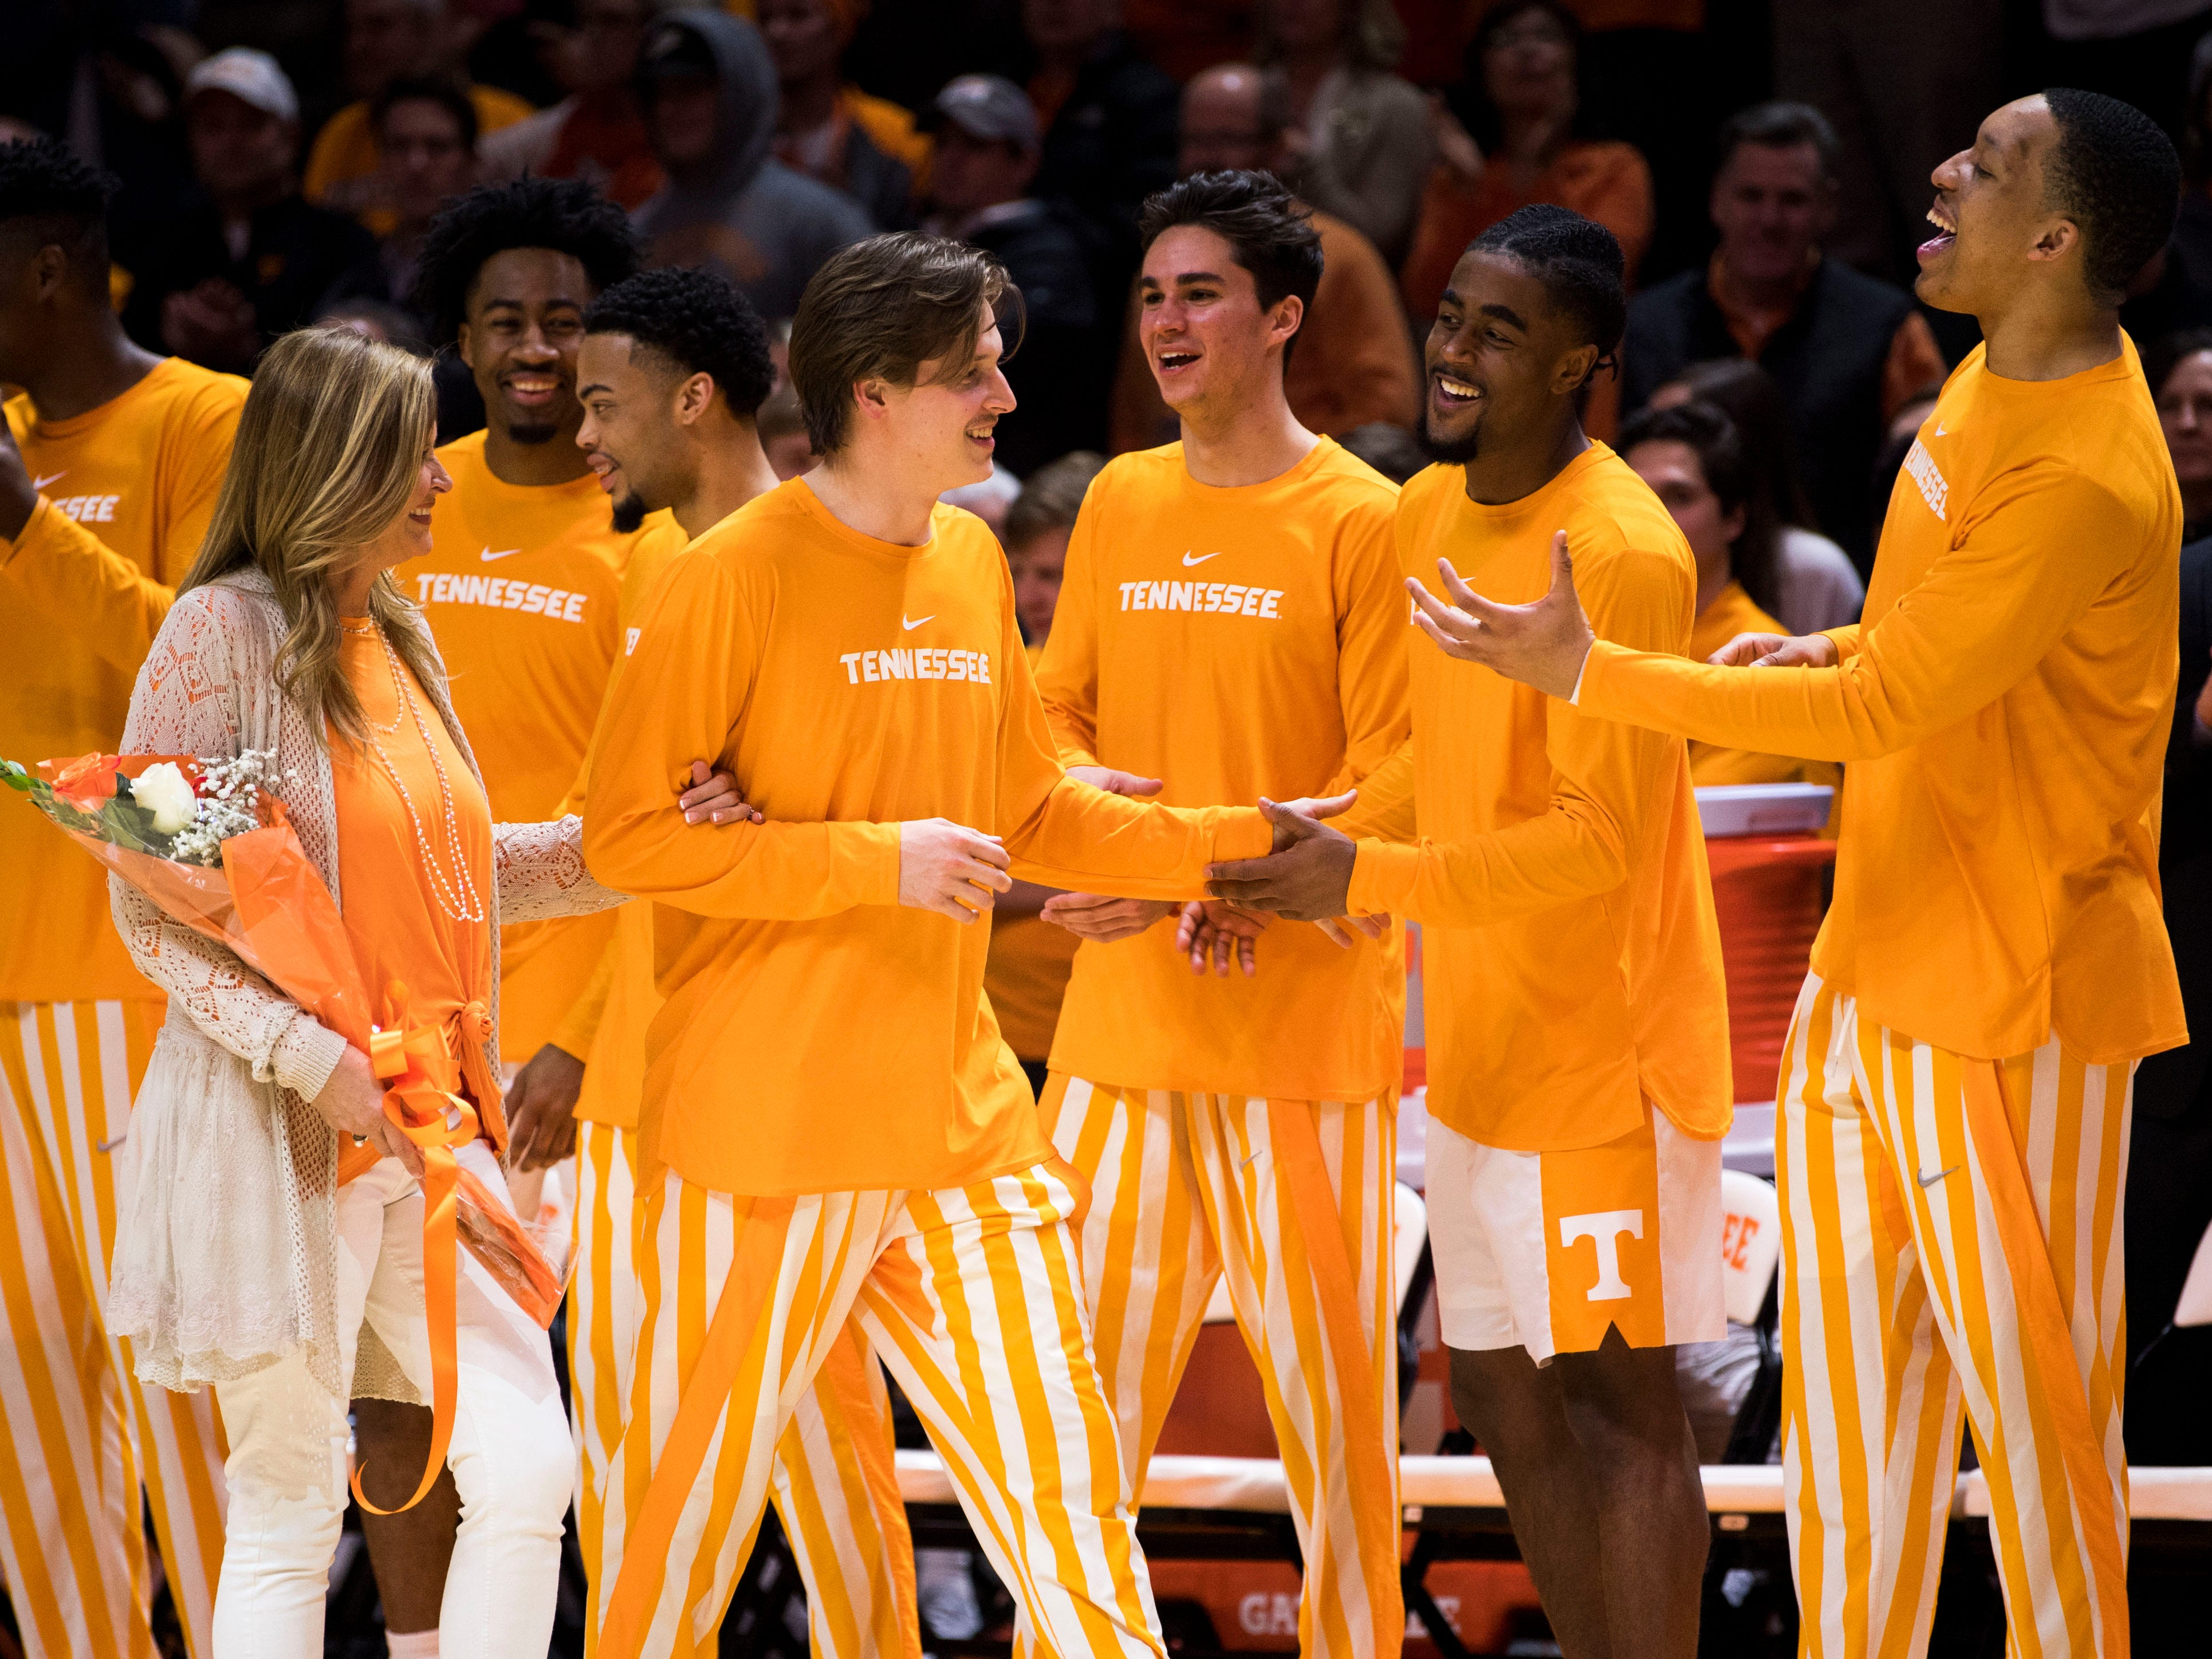 Tennessee guard Lucas Campbell (24) is recognized during Senior Night before Tennessee's home finale against Mississippi State at Thompson-Boling Arena in Knoxville on Tuesday, March 5, 2019.